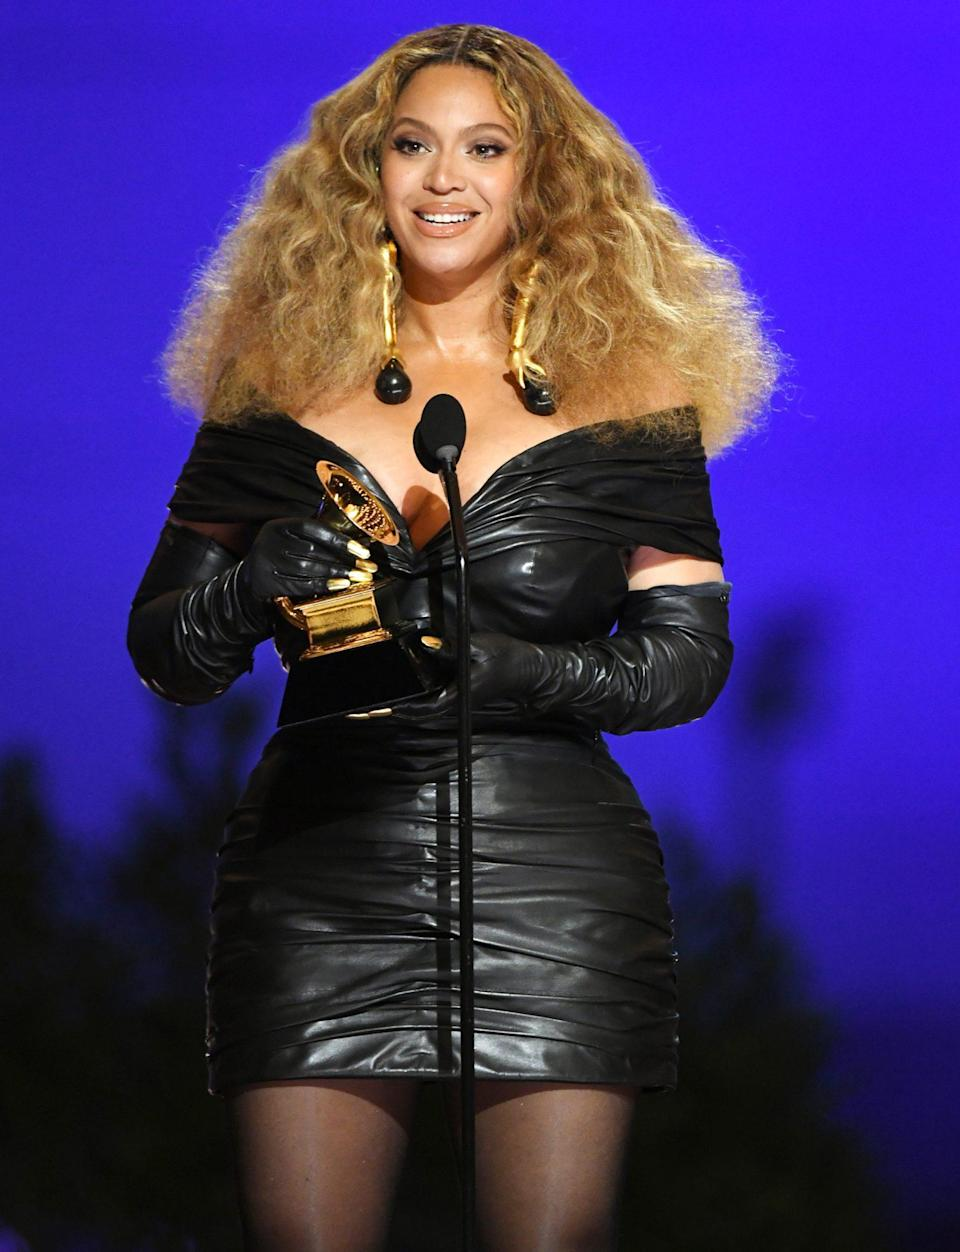 "<p>In 2021, Beyoncé <a href=""https://people.com/music/grammys-2021-beyonce-makes-history-most-decorated-female-artist/"" rel=""nofollow noopener"" target=""_blank"" data-ylk=""slk:broke the record for most Grammys won by a woman"" class=""link rapid-noclick-resp"">broke the record for most Grammys won by a woman</a> <em>and </em>most Grammys won by any singer, male or female. </p> <p>She and her 9-year-old daughter, Blue Ivy, <a href=""https://people.com/music/grammys-2021-beyonce-wins-best-r-and-b-performance/"" rel=""nofollow noopener"" target=""_blank"" data-ylk=""slk:earned a Grammy for best music video for &quot;Brown Skin Girl,&quot;"" class=""link rapid-noclick-resp"">earned a Grammy for best music video for ""Brown Skin Girl,""</a> and Bey won a Grammy for best R&B performance for ""Black Parade"" plus two more for her <a href=""https://people.com/music/grammys-2021-beyonce-megan-thee-stallion-win-best-rap-song/"" rel=""nofollow noopener"" target=""_blank"" data-ylk=""slk:collaboration with Megan Thee Stallion"" class=""link rapid-noclick-resp"">collaboration with Megan Thee Stallion</a>. The duo took home prizes for best rap performance and best rap song for ""Savage."" In total, the singer has 79 nominations to her name.</p> <p><strong>Beyoncé's Grammy Tally: </strong>28</p>"